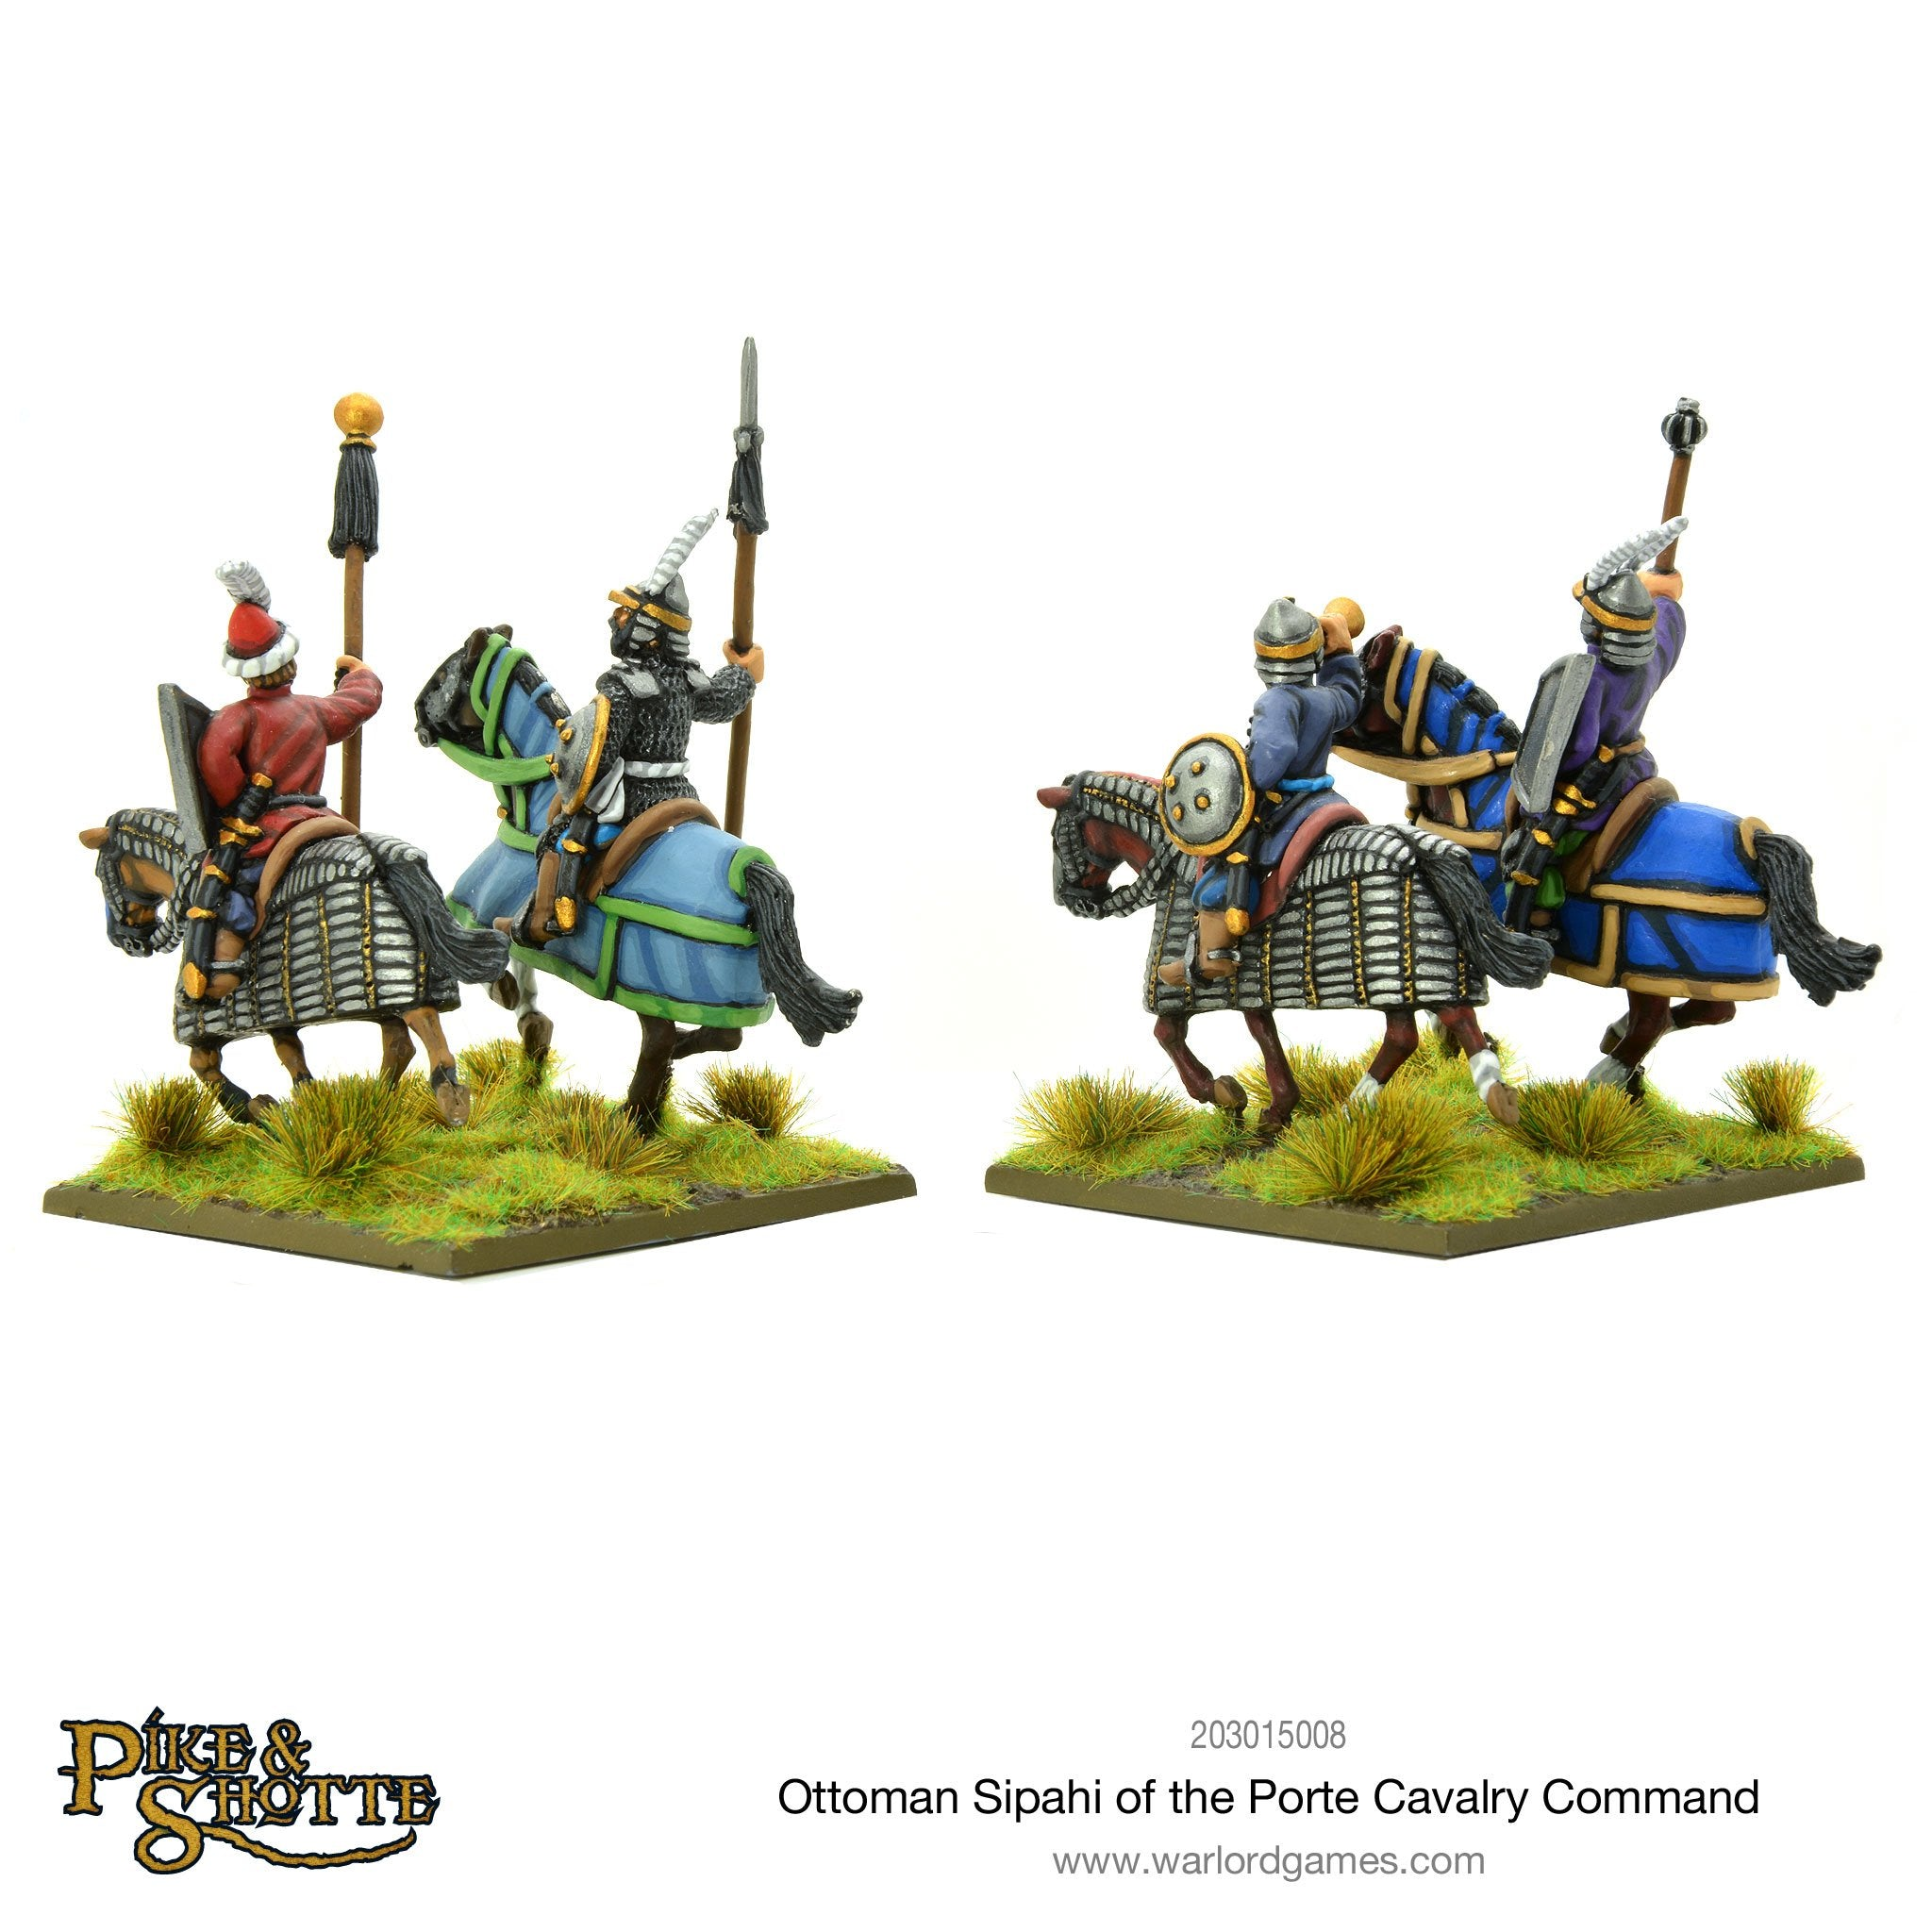 Ottoman Sipahi of the Porte cavalry command